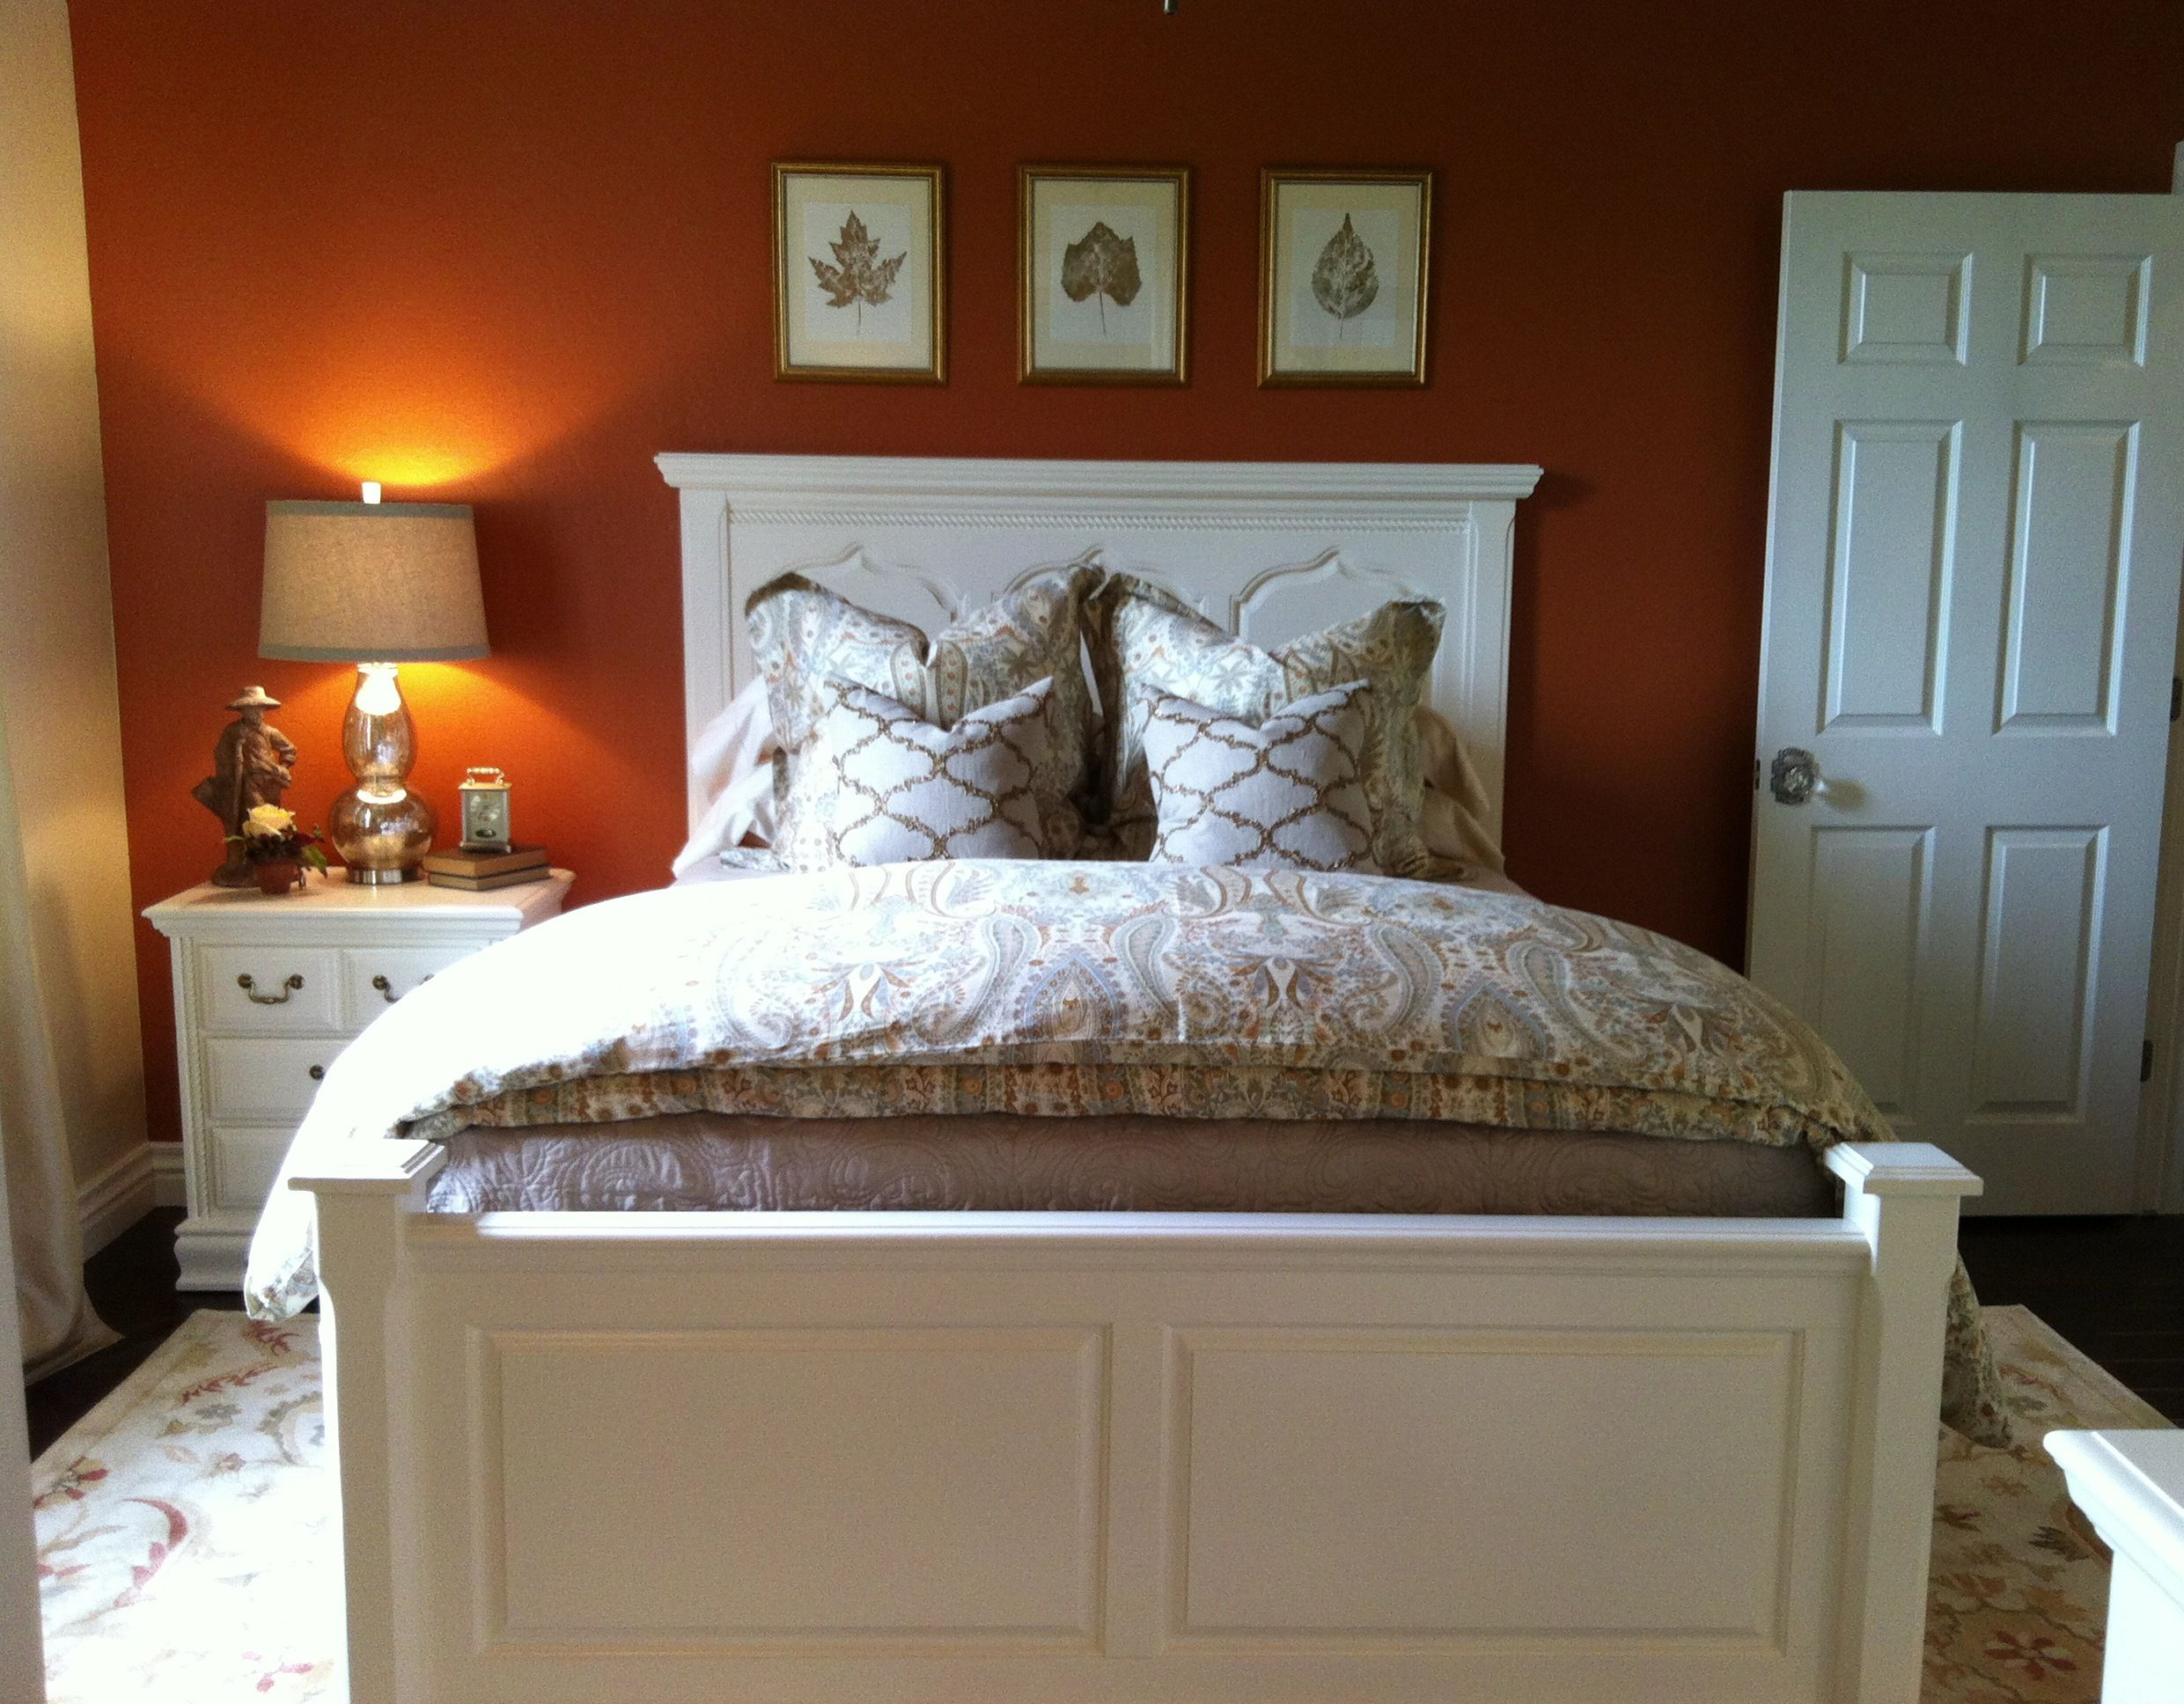 burnt orange, cream, and taupe as my palette. I wanted it